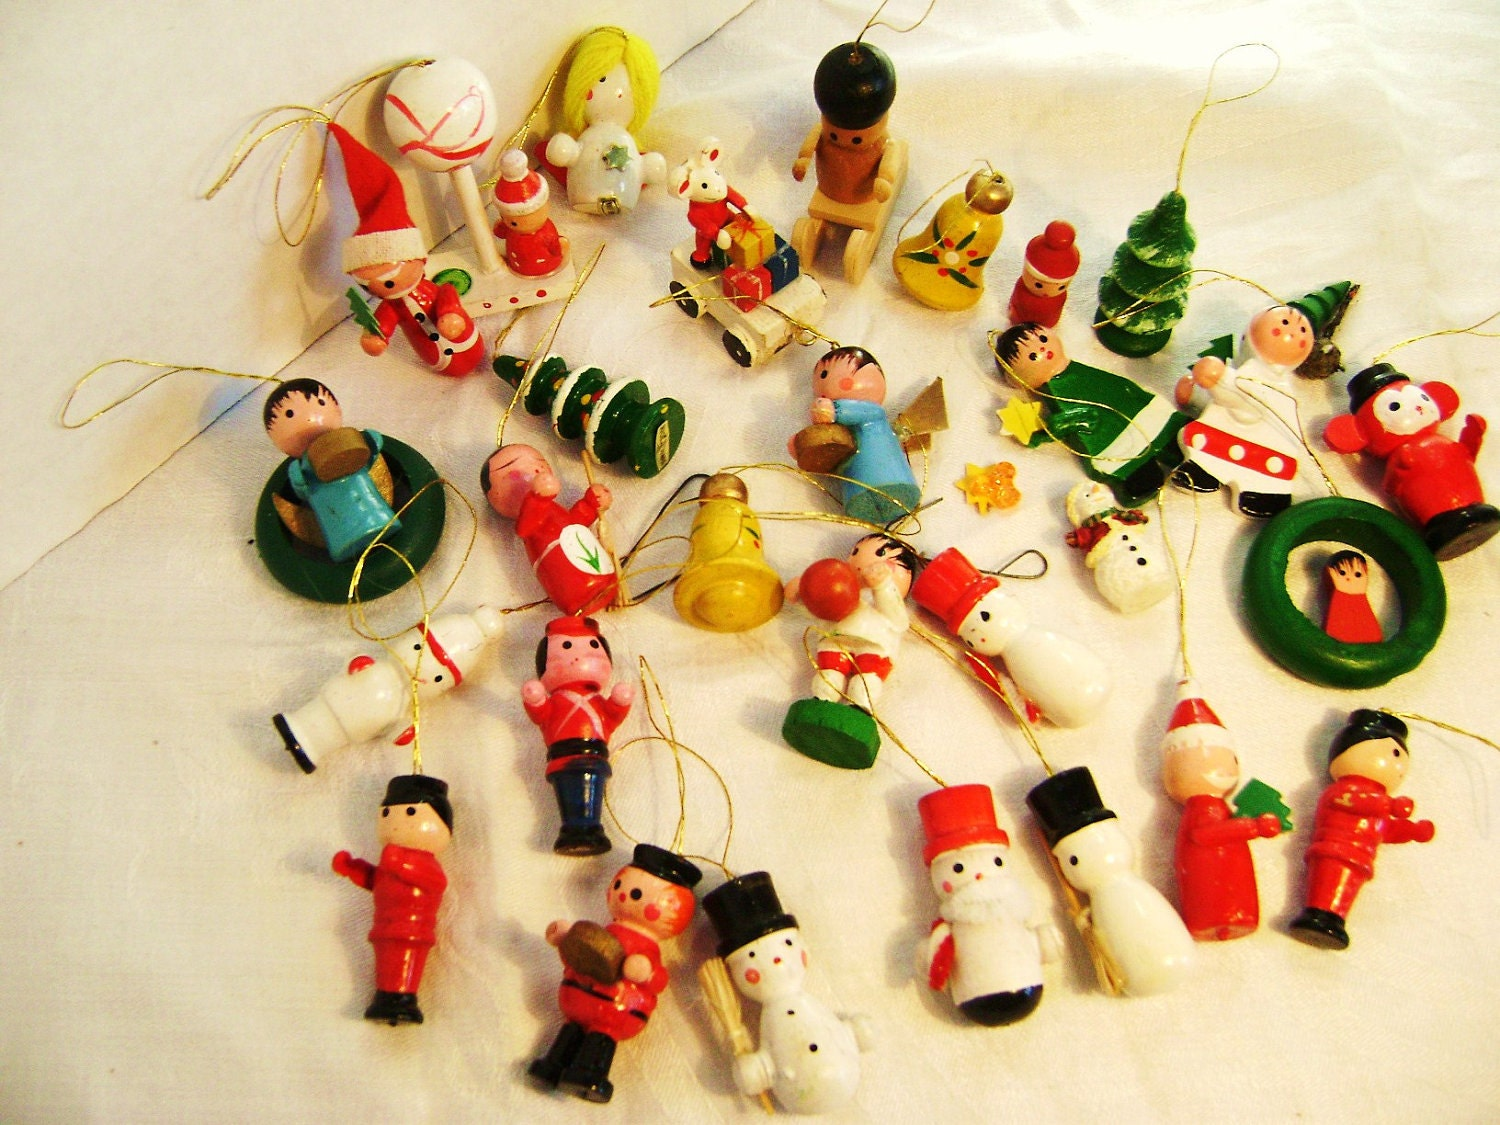 Miniature Wooden Christmas Ornaments. Unlike clothes and toys the child will grow on, personalized christening gifts sentimental memories will last, holding cherished memories of the day of .